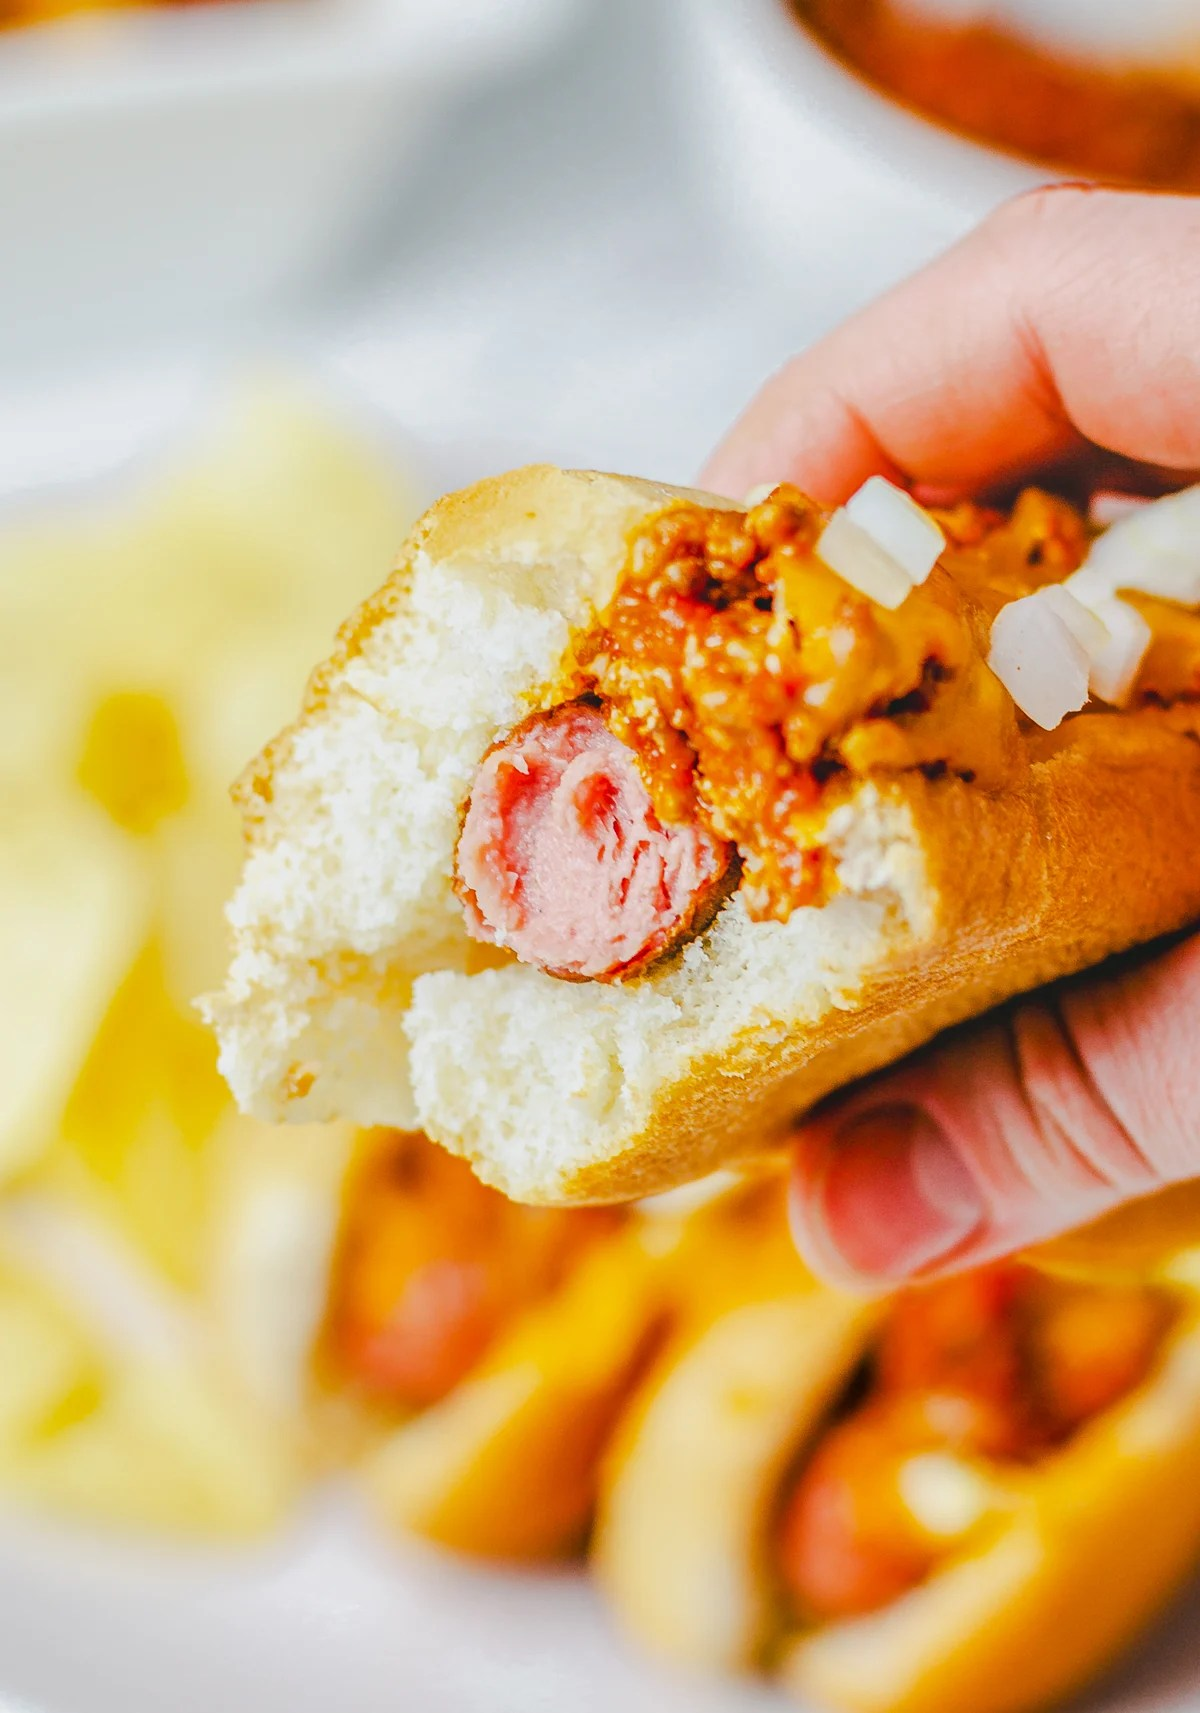 Bite taken out of hot dog being held by hand